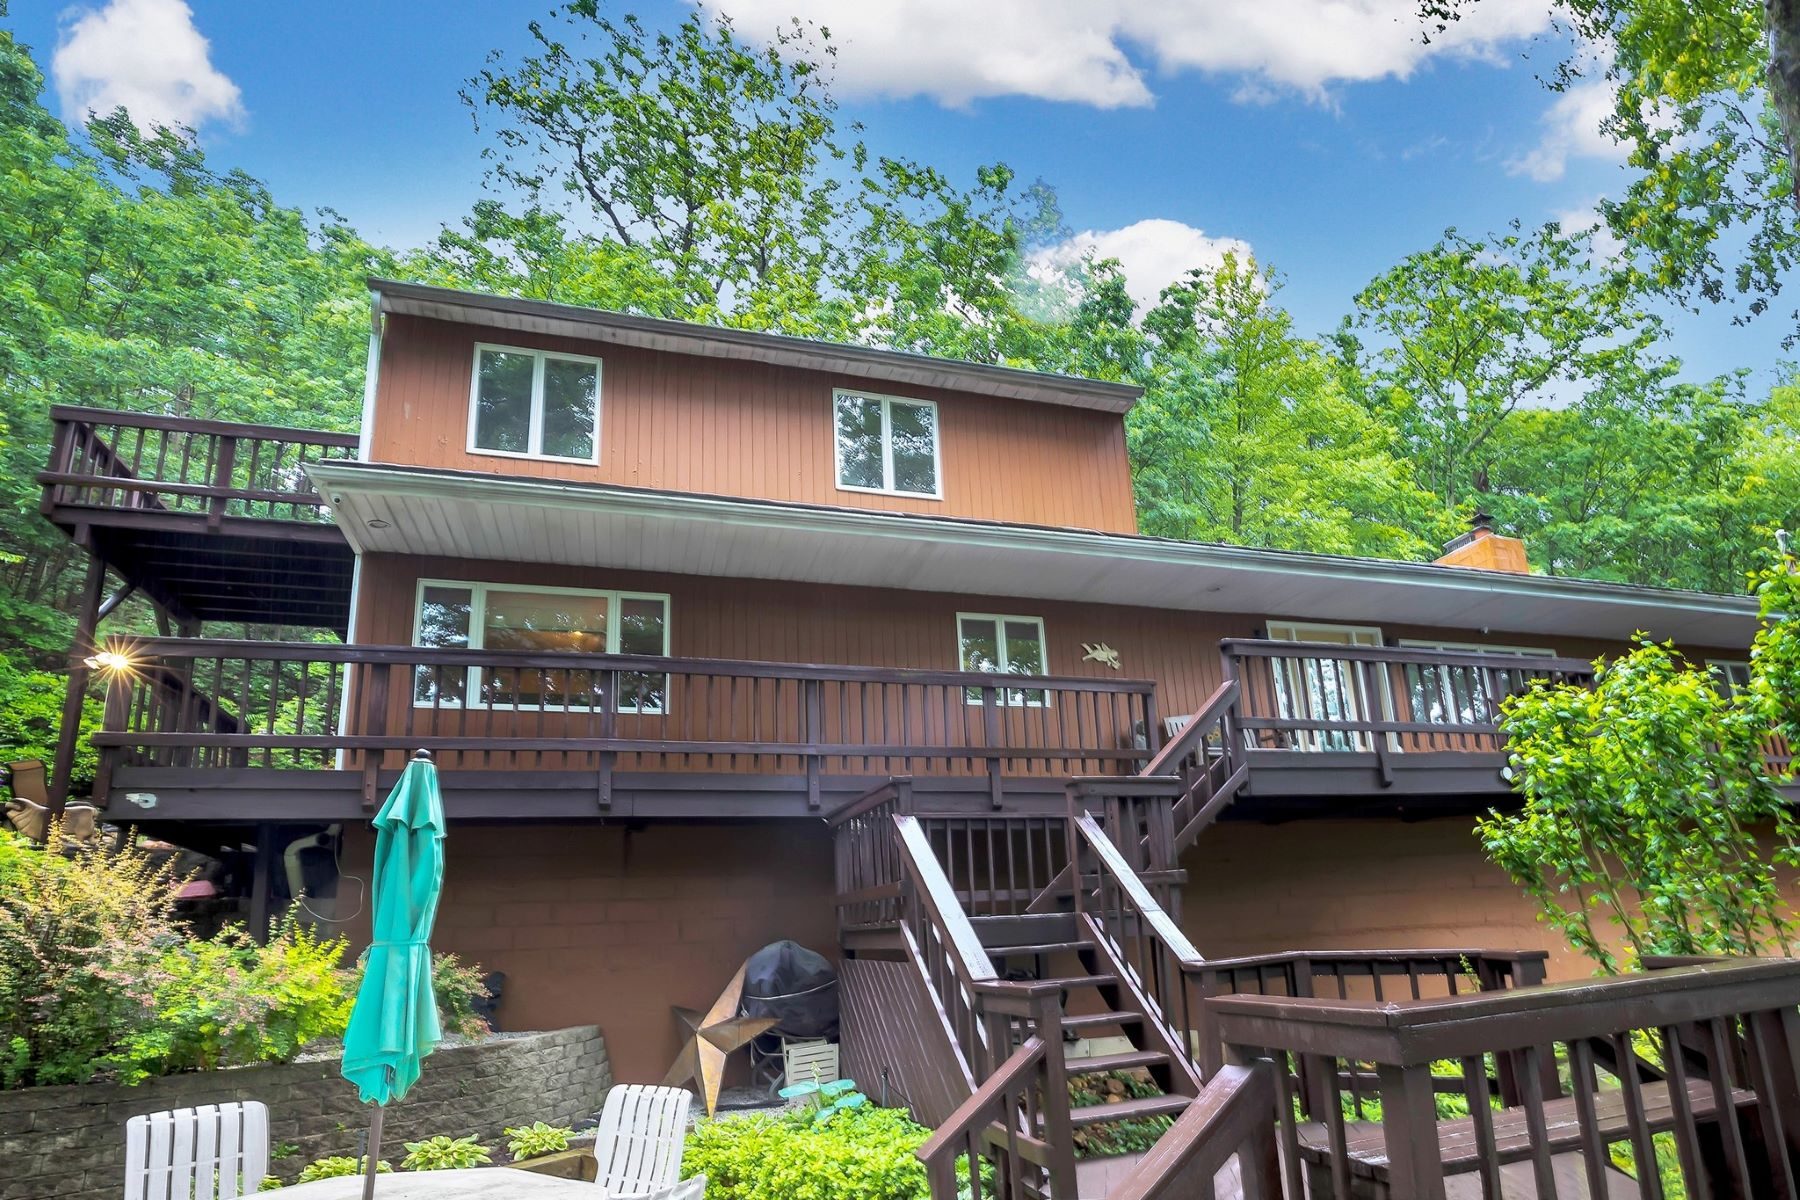 Single Family Homes for Sale at Cold Spring Hrbr 485 Harbor Rd Cold Spring Harbor, New York 11724 United States